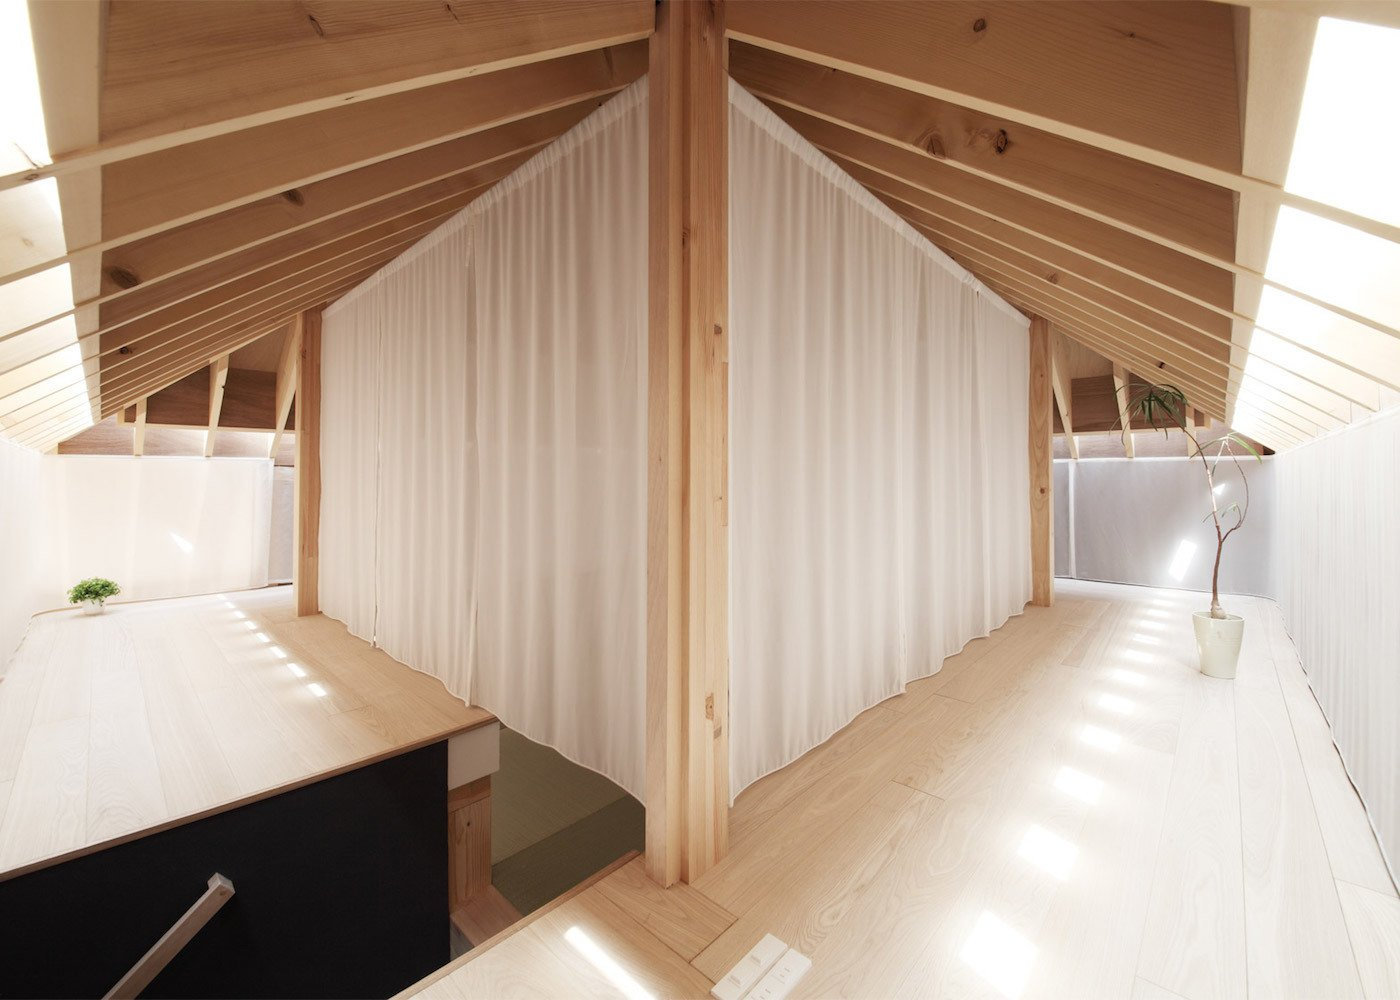 Unabashedly Strange Houses in Japan by Luke Hopping